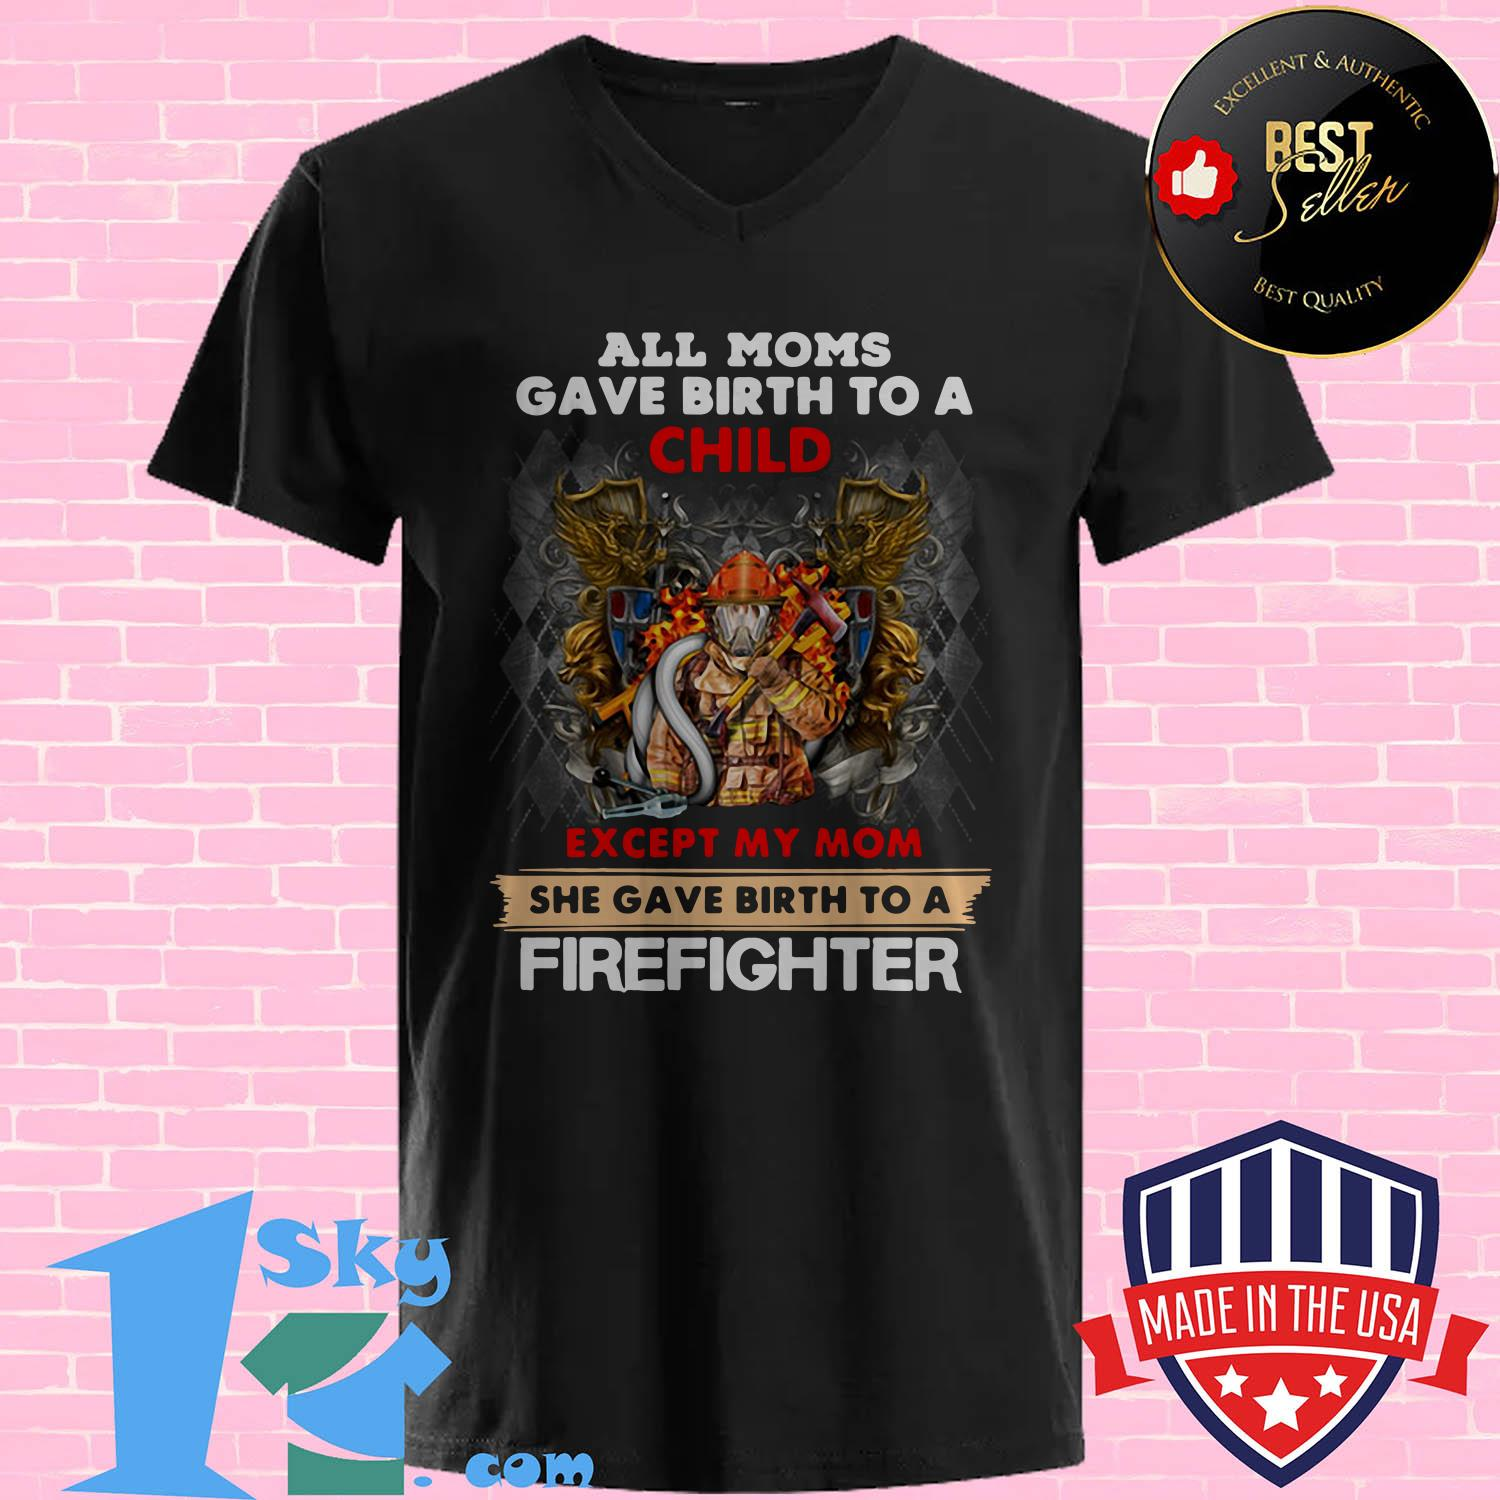 all moms gave birth to a child except my mom she gave birth a firefighter v neck - All moms gave birth to a child except my mom she gave birth a firefighter shirt